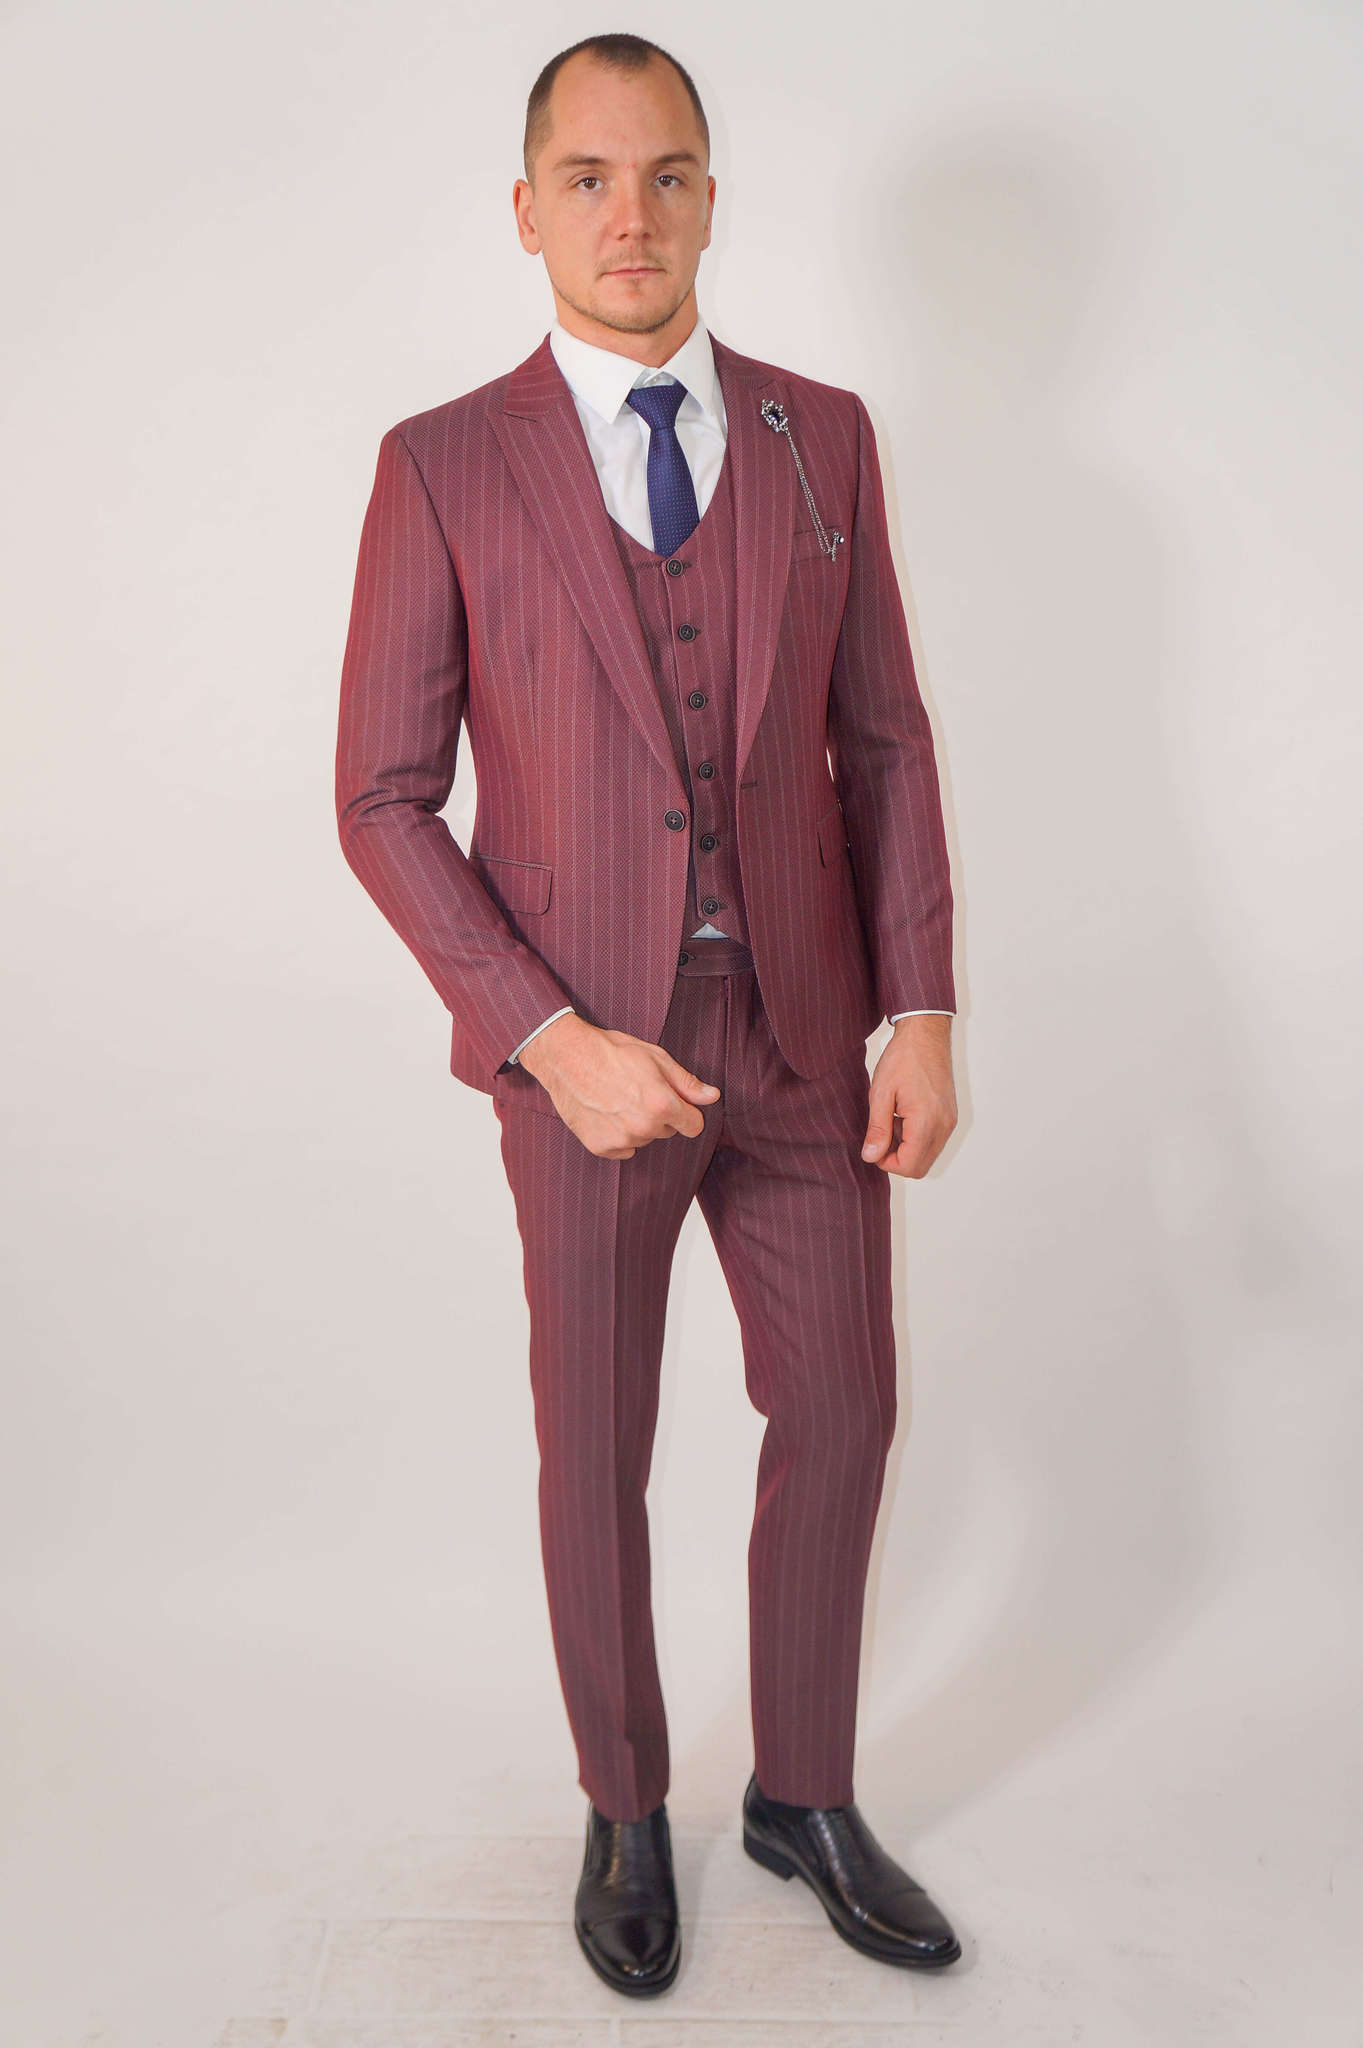 Костюмы Slim fit CESARE MARIANO / Костюм - тройка slim fit DSC02353.jpg